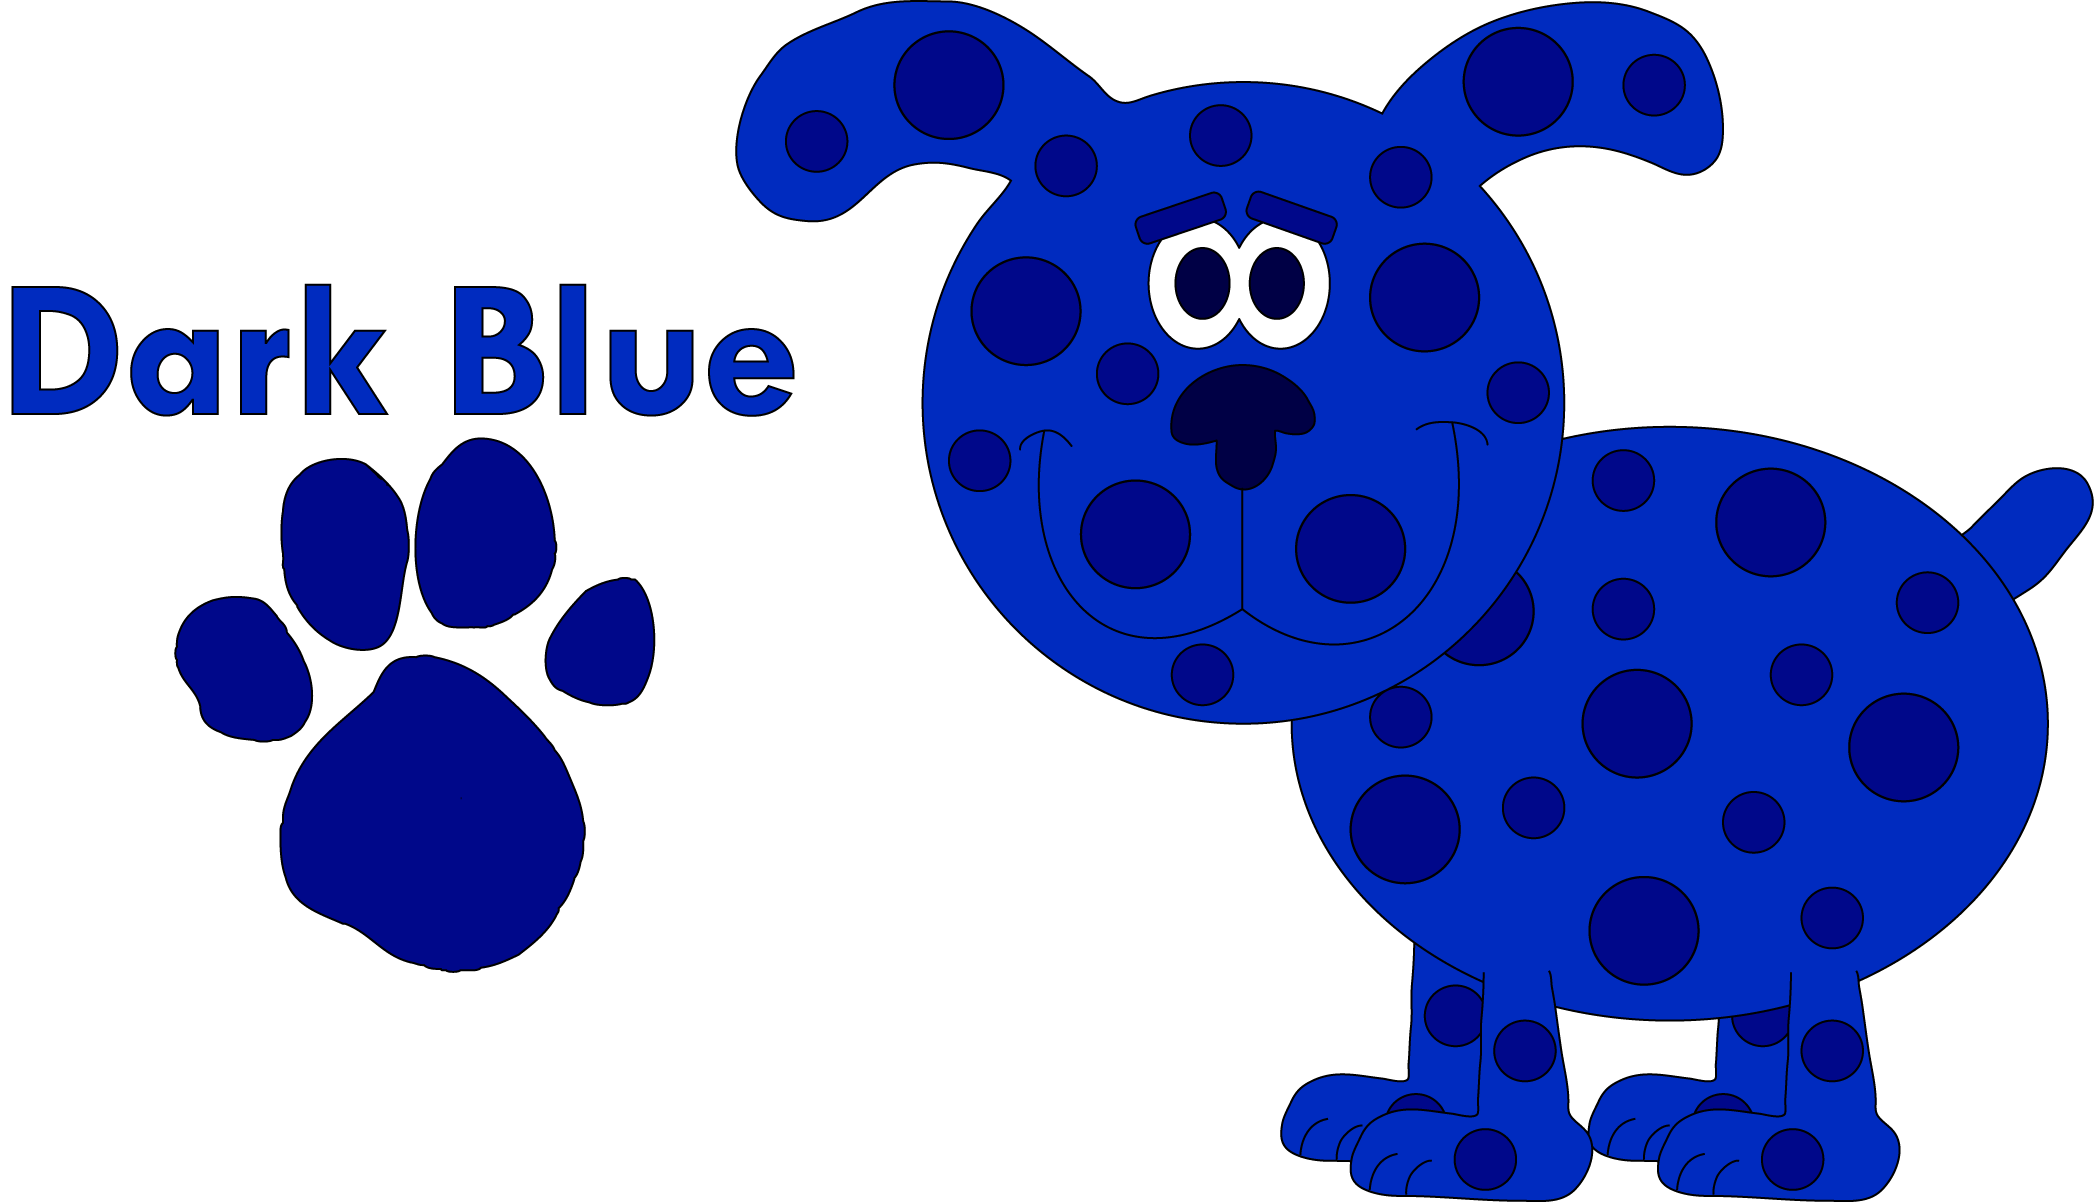 Blues clues group dark. Pawprint clipart blue's clue